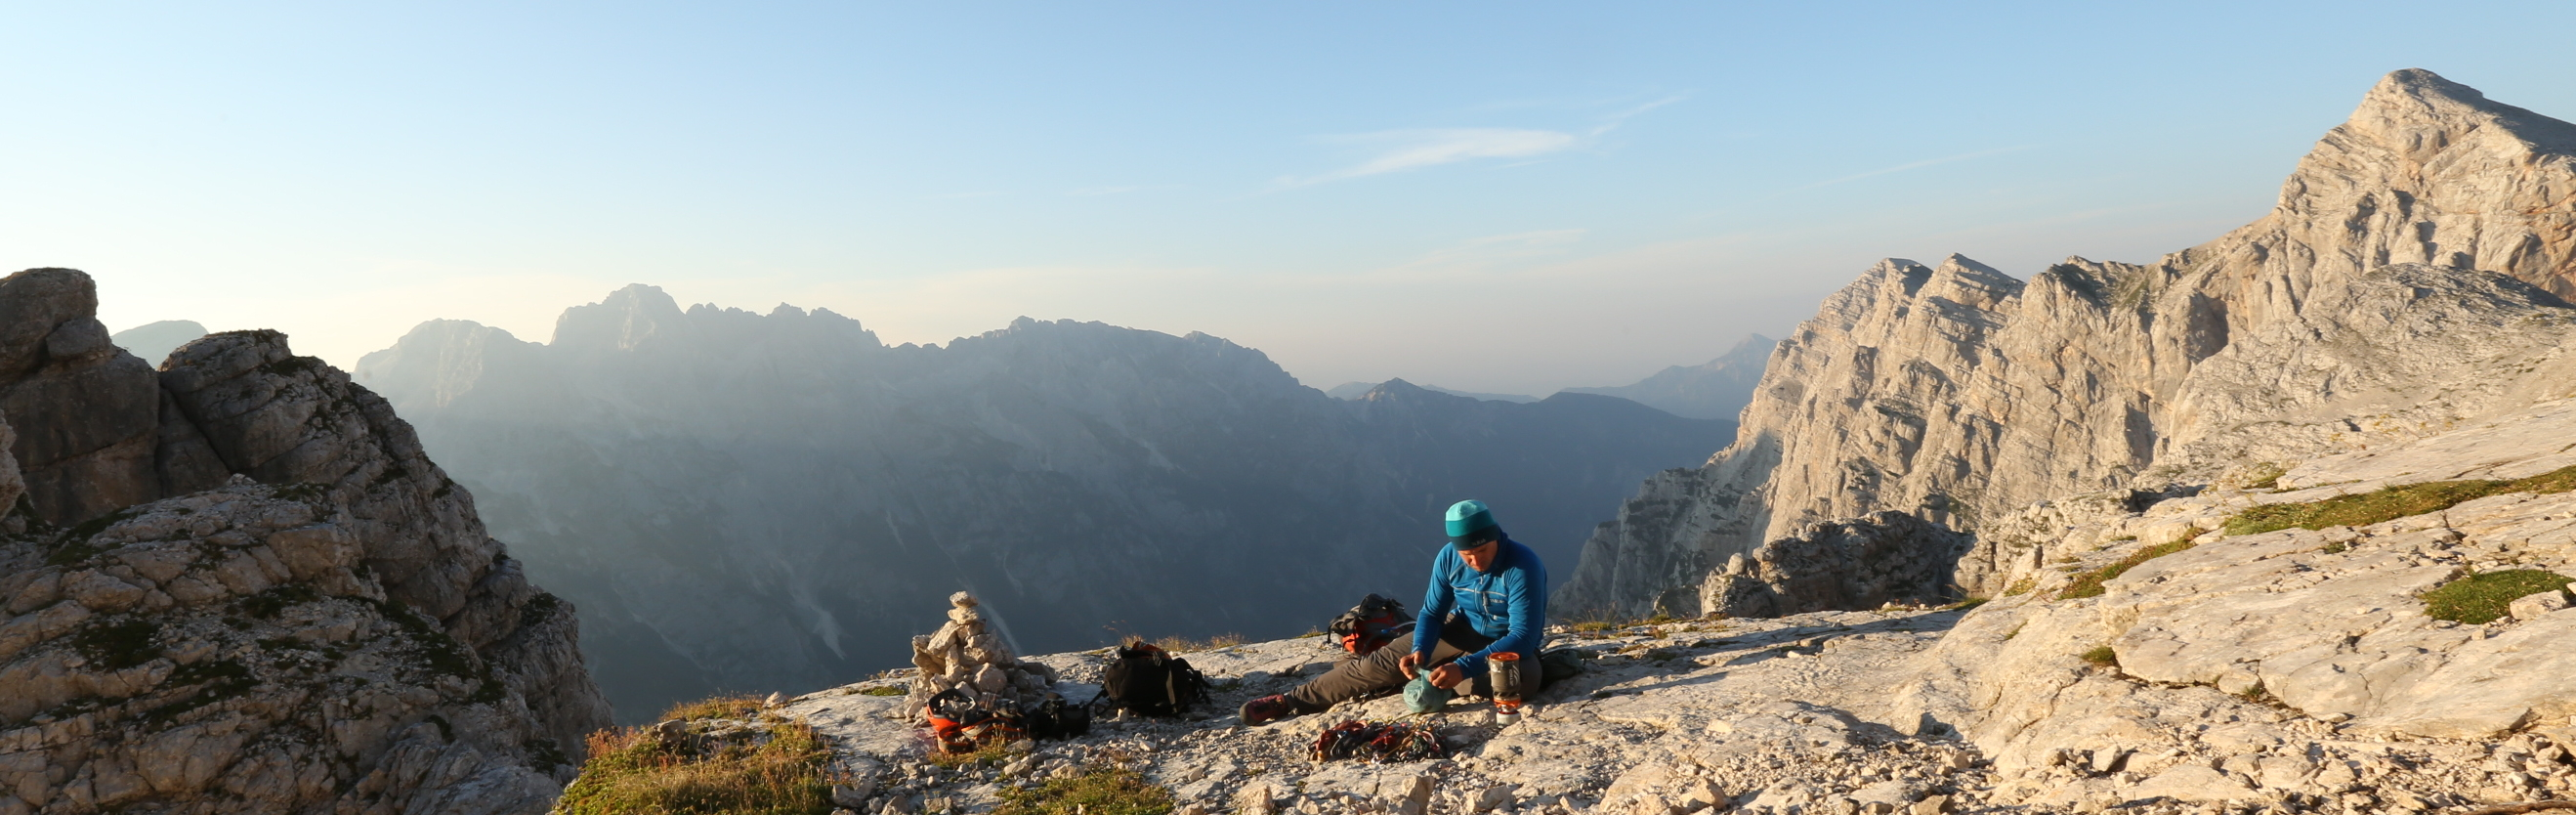 Triglav - Dave Talbot Adventure Events